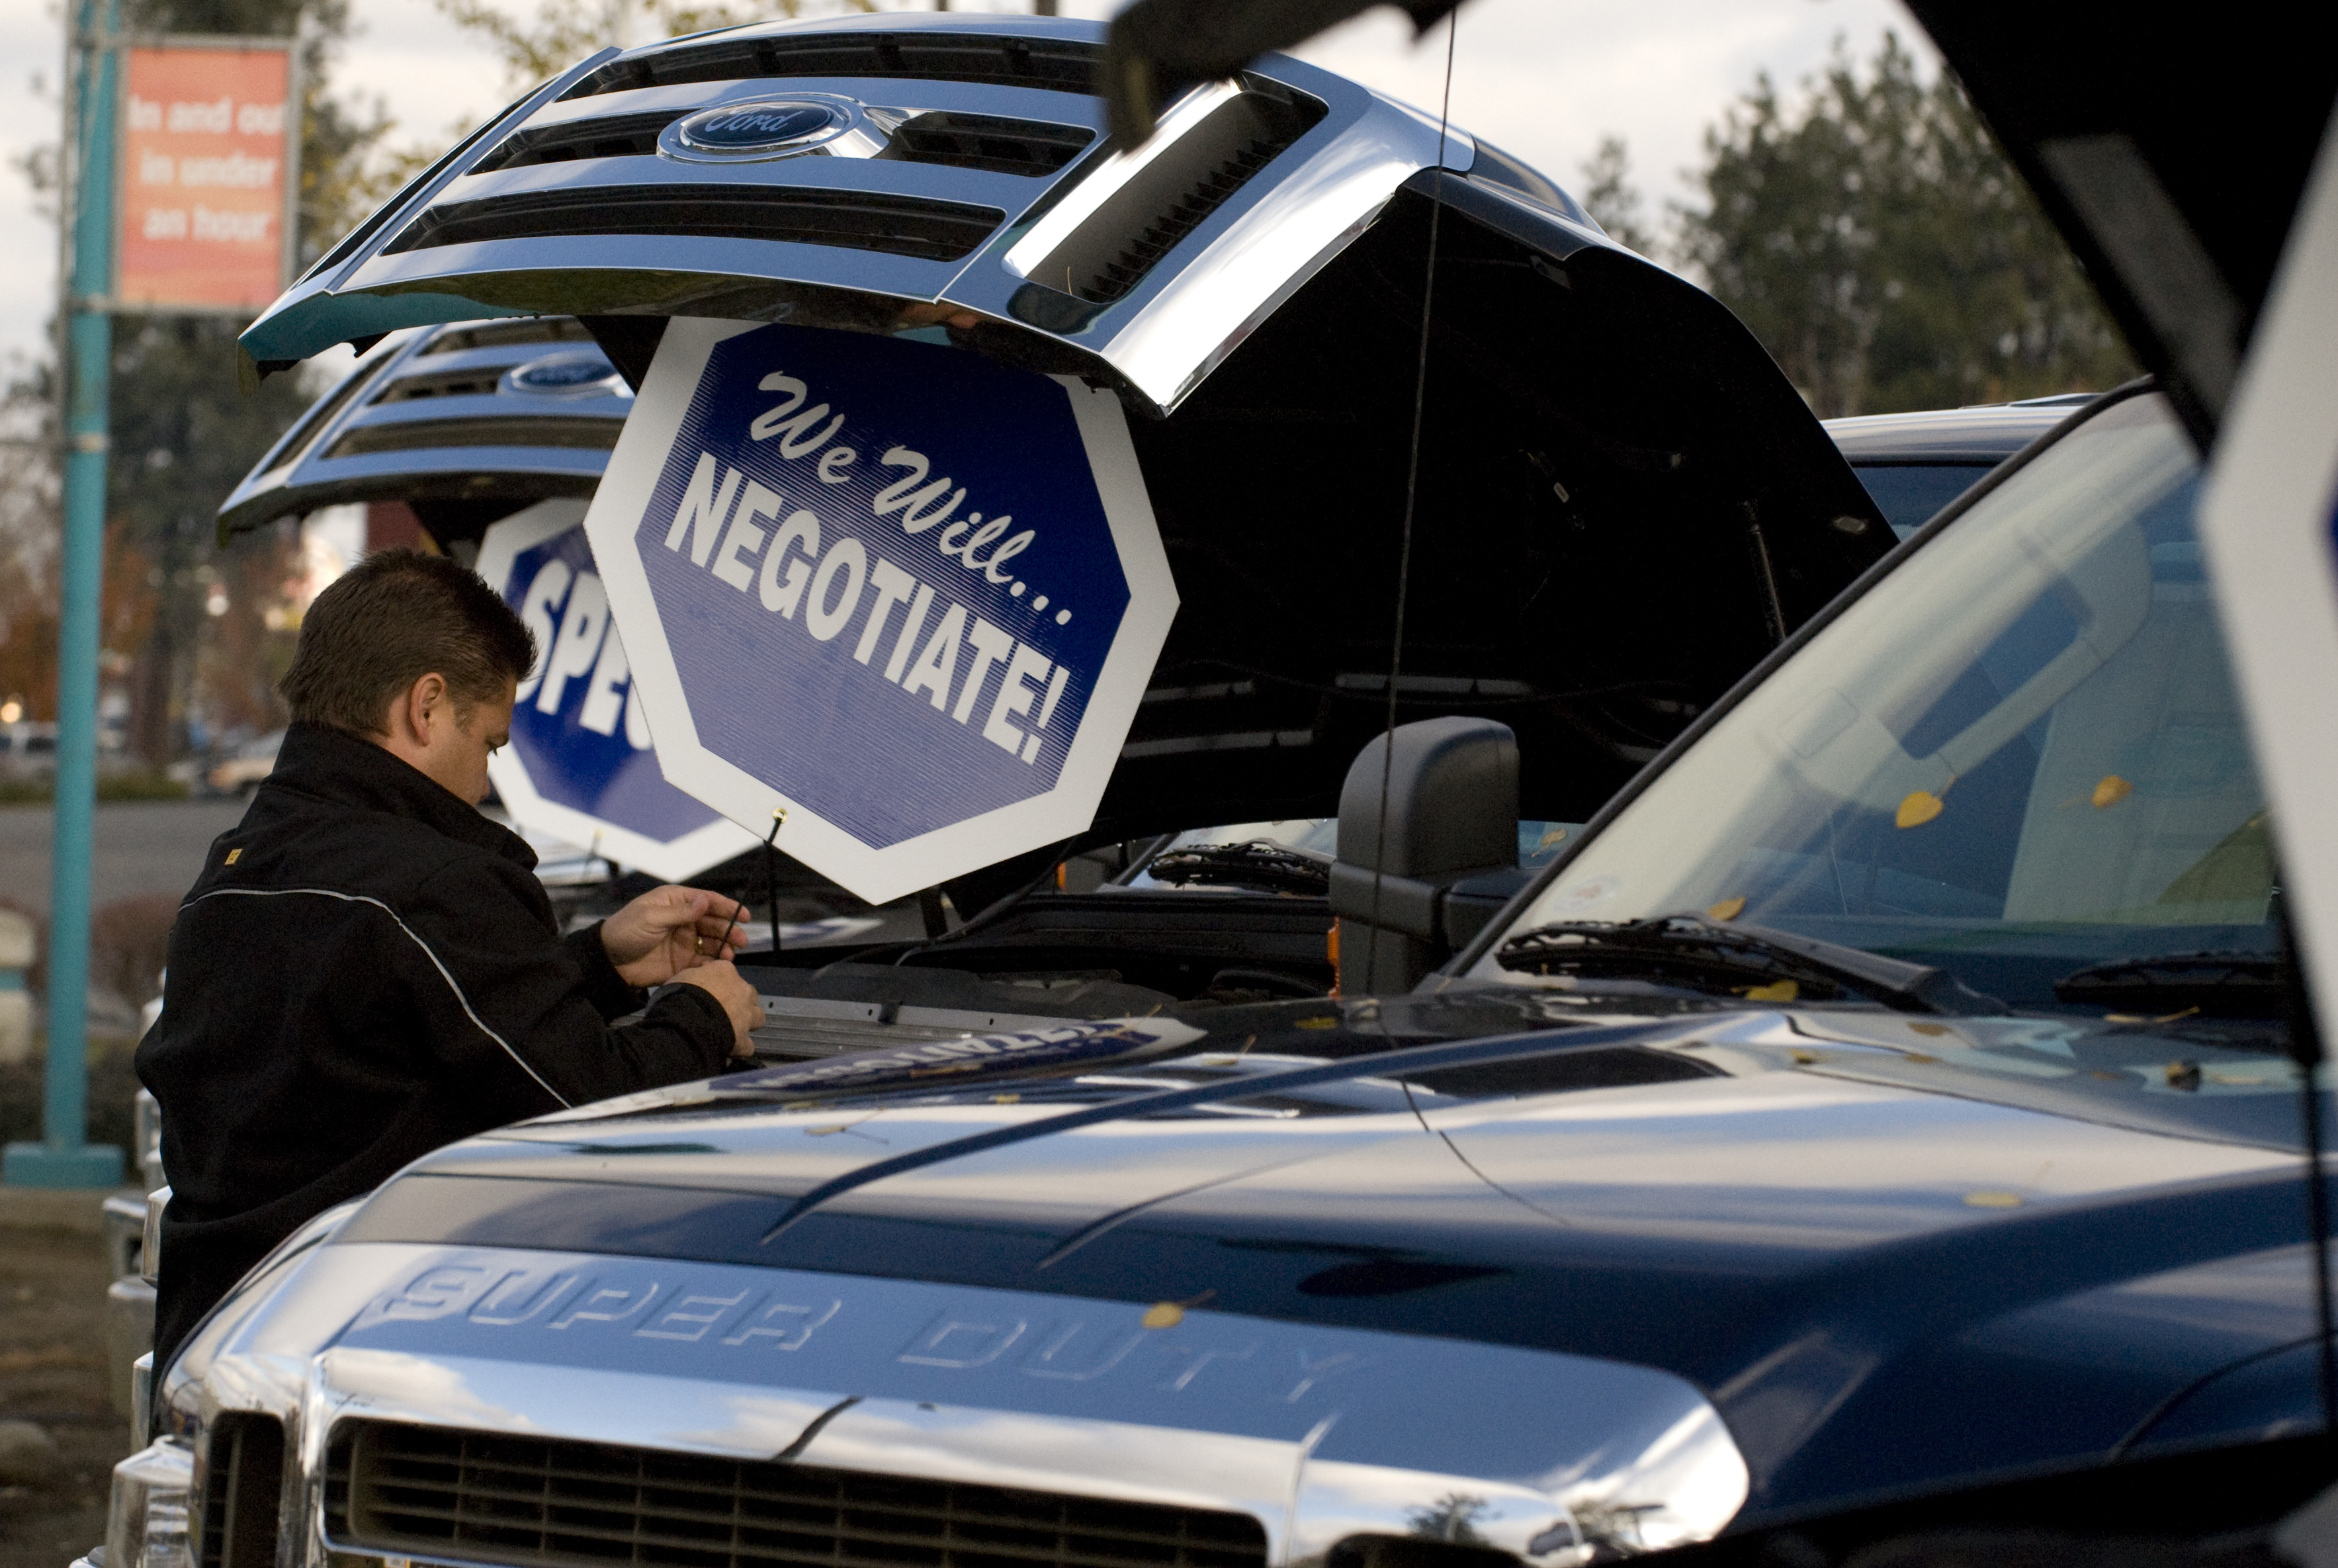 Car Dealers Like Wendle Auto Group General Manager Shayne Goff Are Doing Everything Possible To Attract